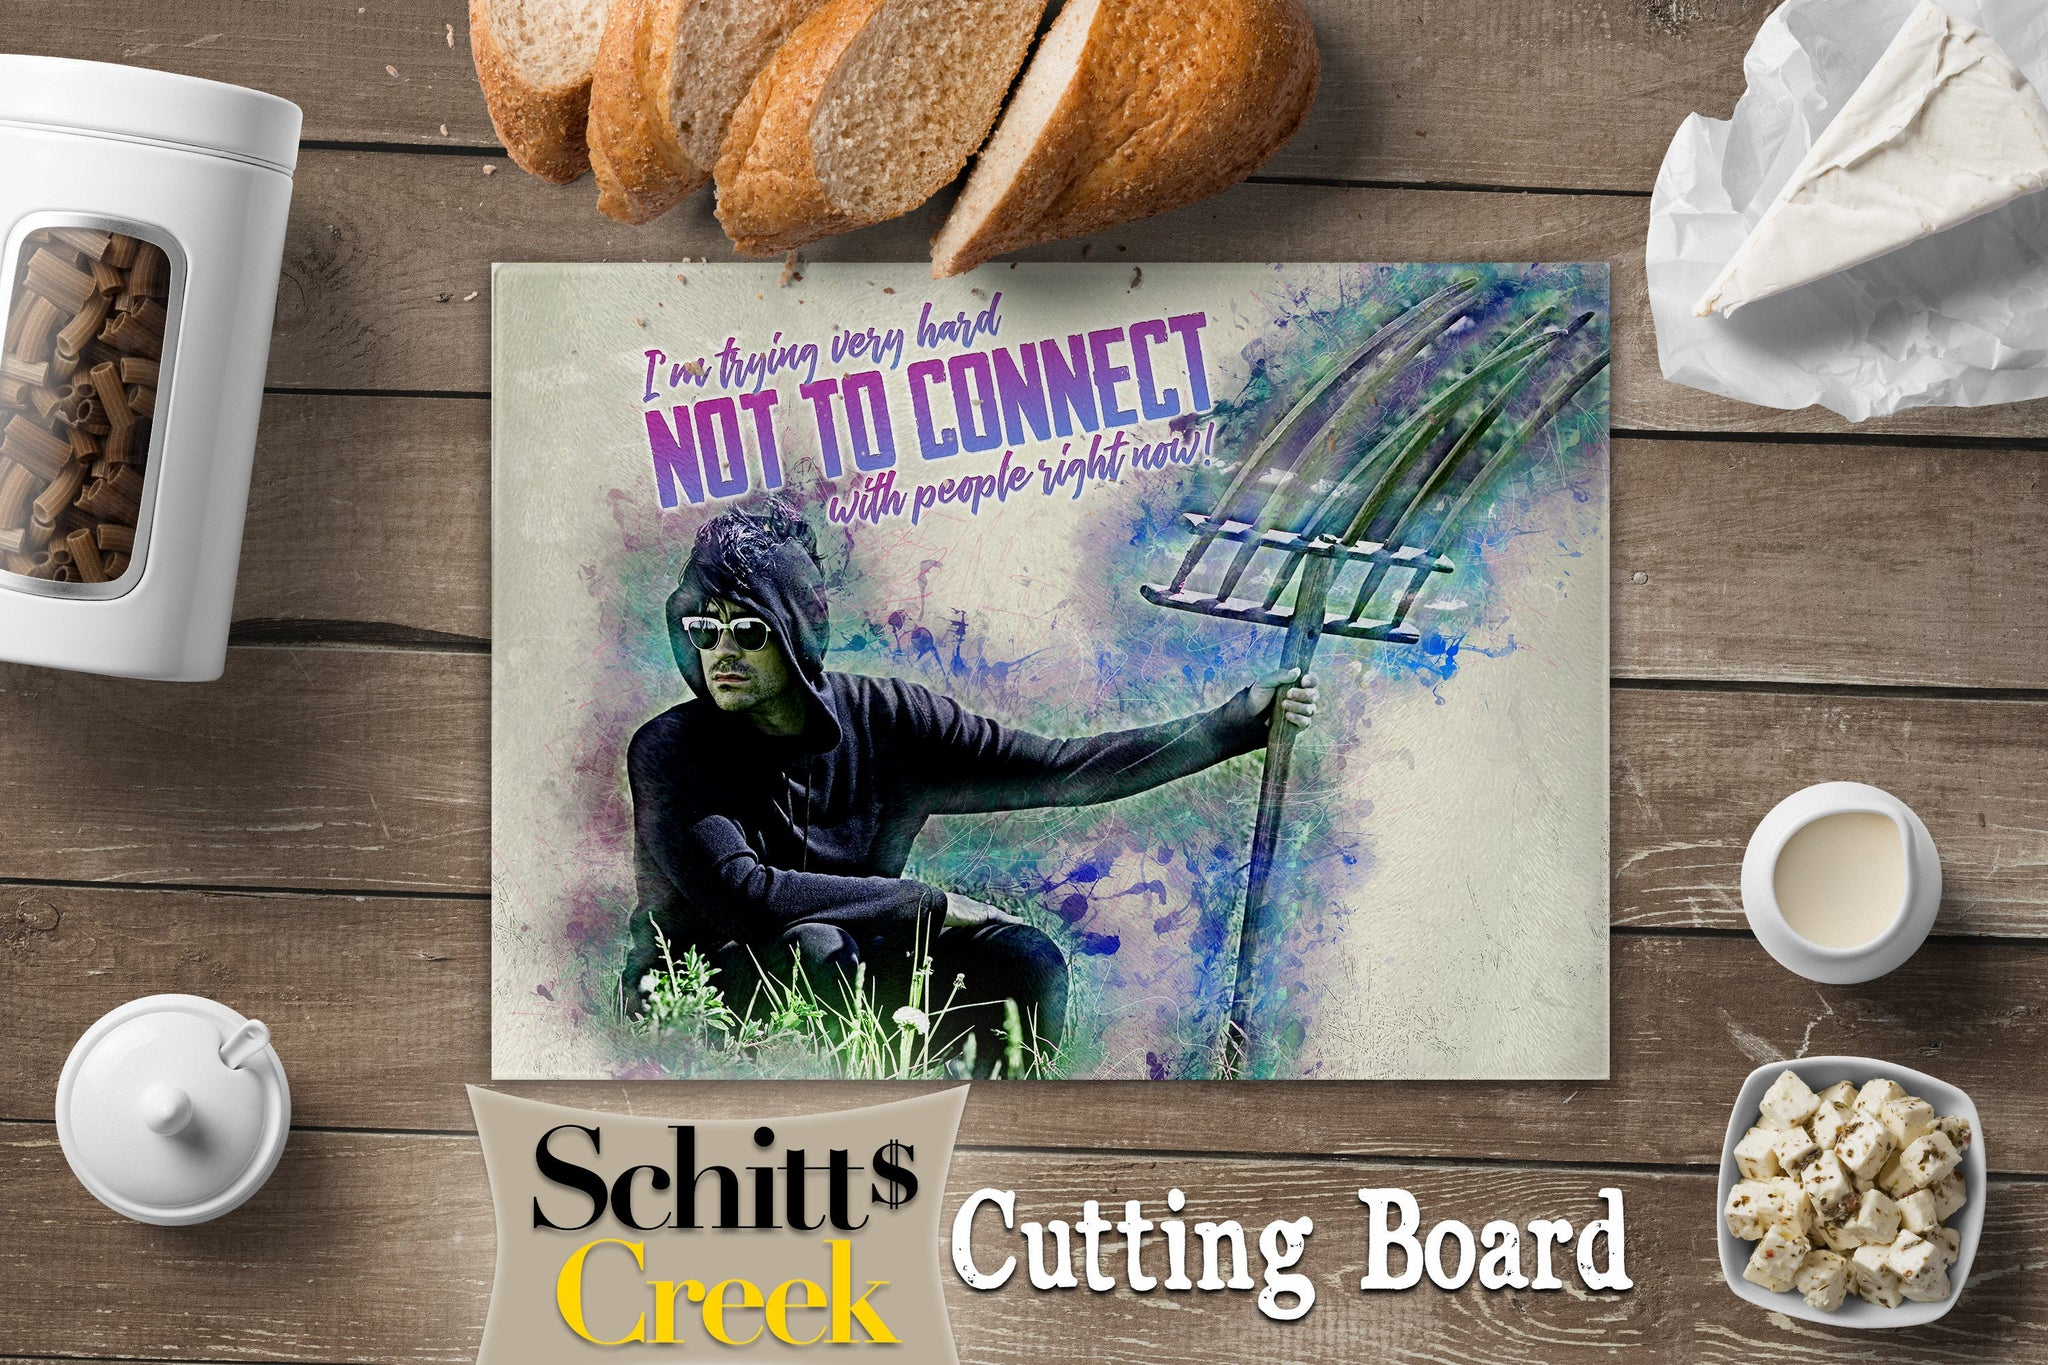 Schitts Creek David in a Field, Schitts Creek Gifts, Schitts Creek Cutting Board, Schitts Creek Decorations, Glass Cutting Board